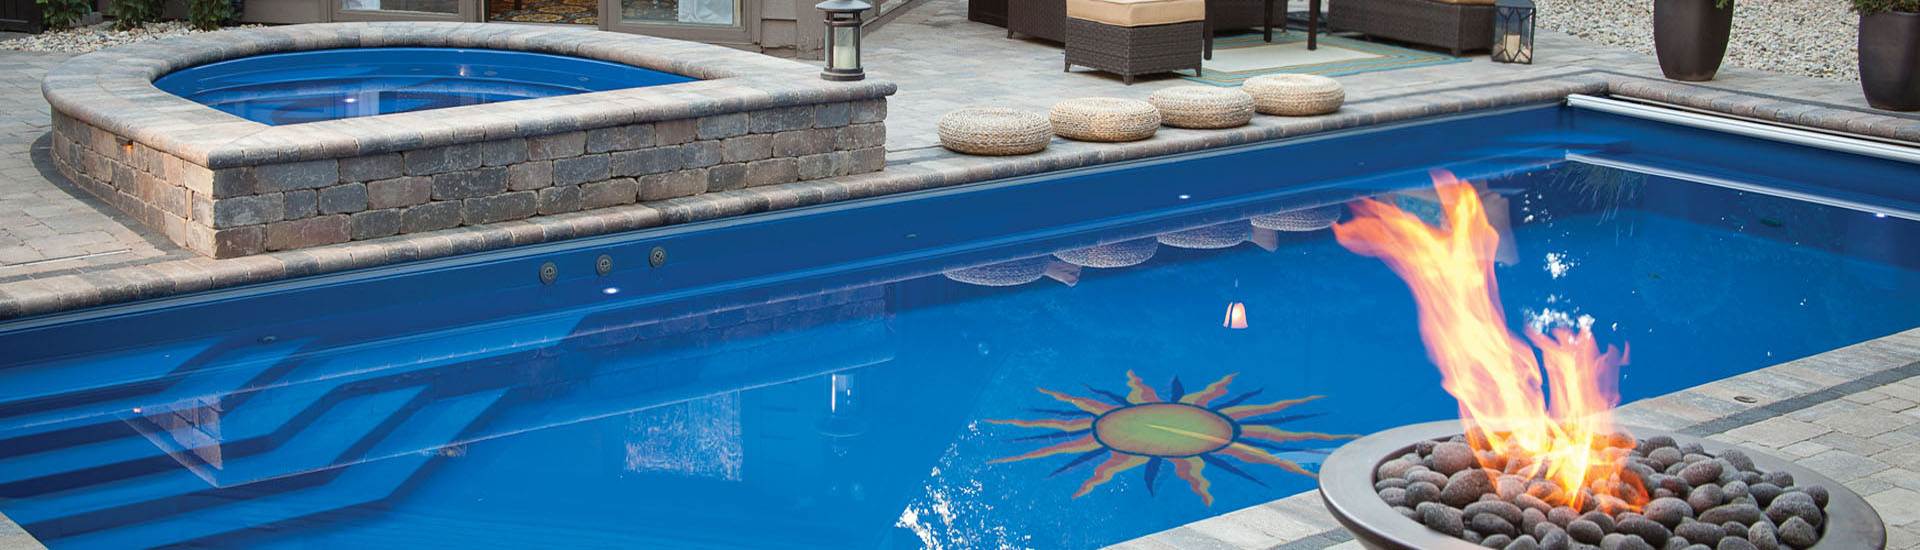 Artistry In Mosaics Distinctive Tile Designs For Your Pool And Home